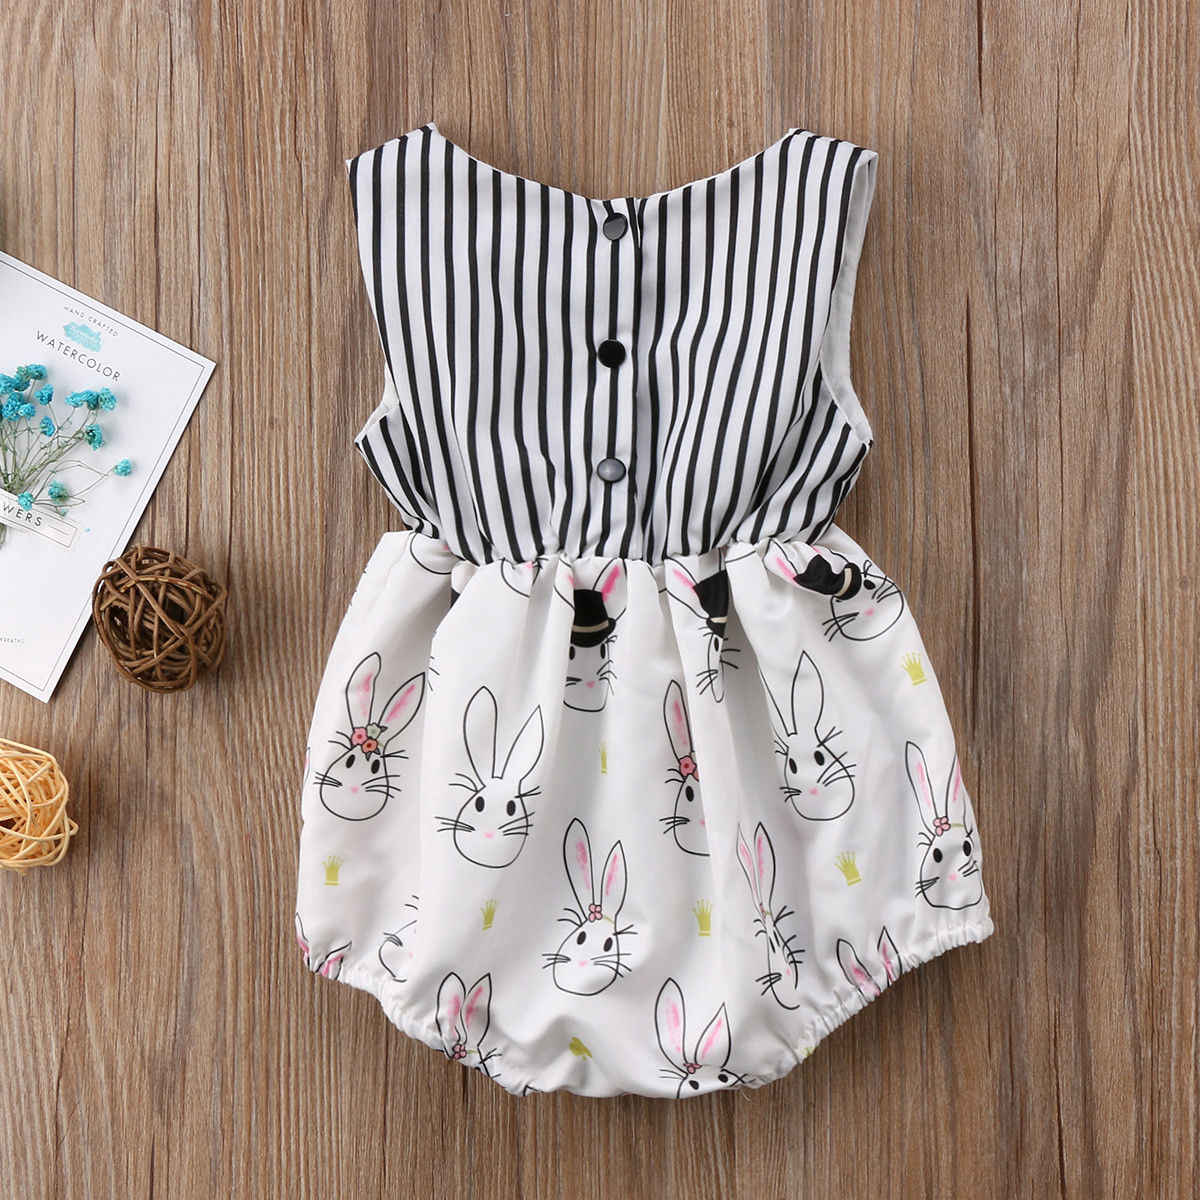 17e5a99d3913 ... 2018 Happy Easter Toddler Baby Girls Bowknot Jumpsuit Bodysuit  Sleeveless Bow Striped Clothes Summer Bunny Rubbit ...